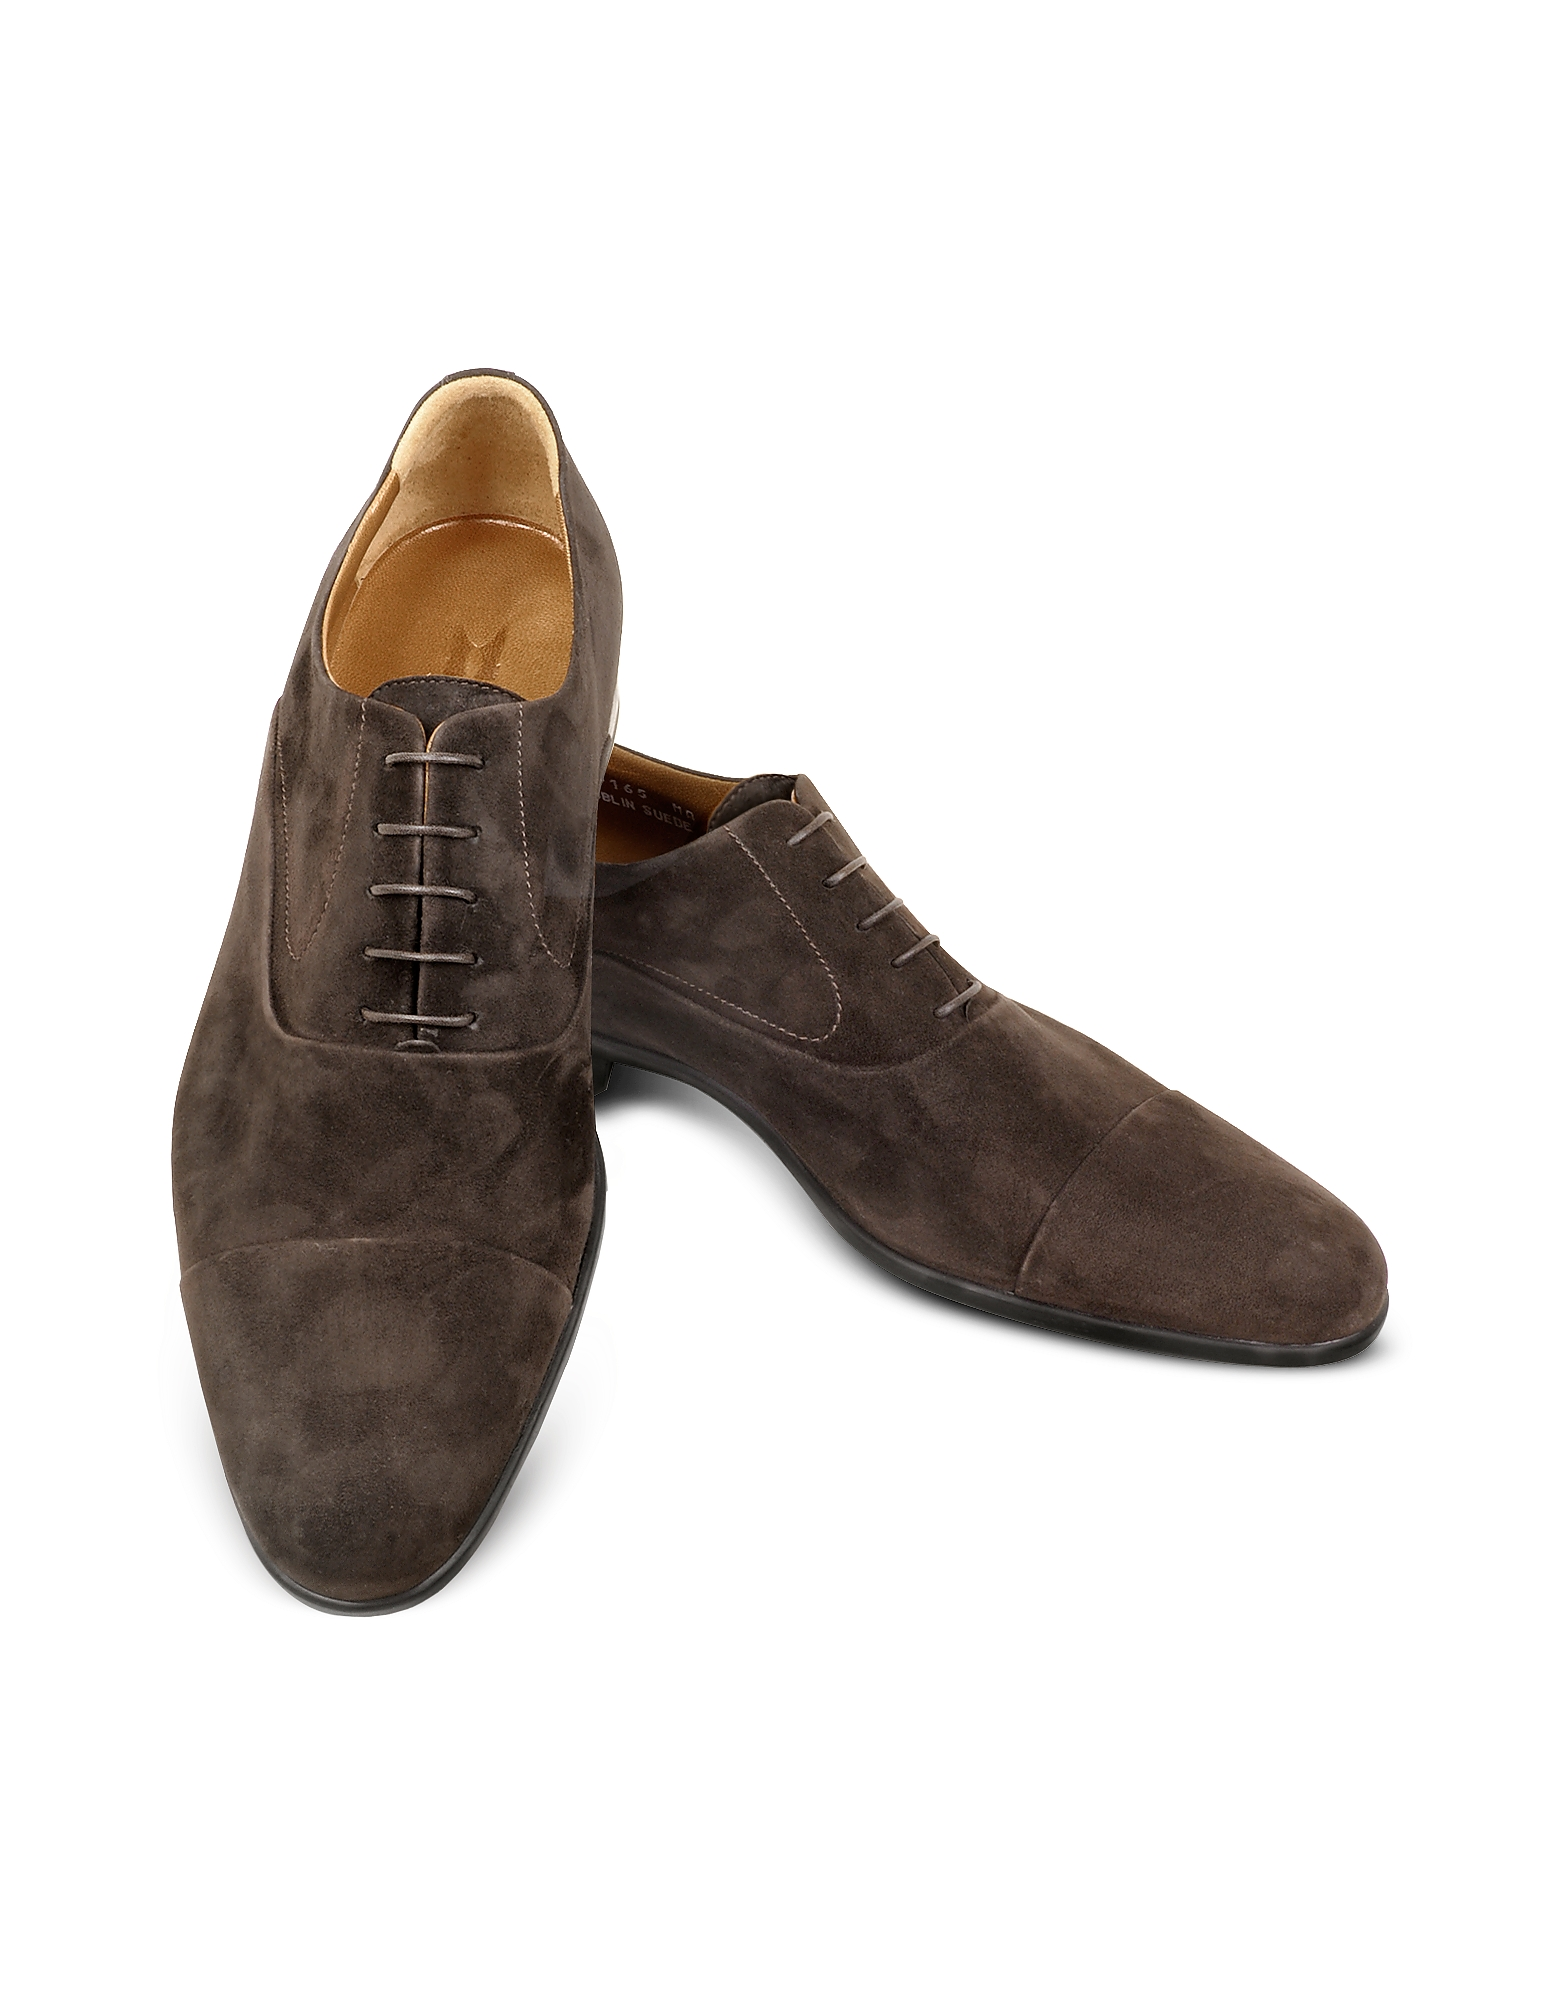 Moreschi Shoes, Dublin Dark Brown Suede Cap-Toe Oxford Shoes